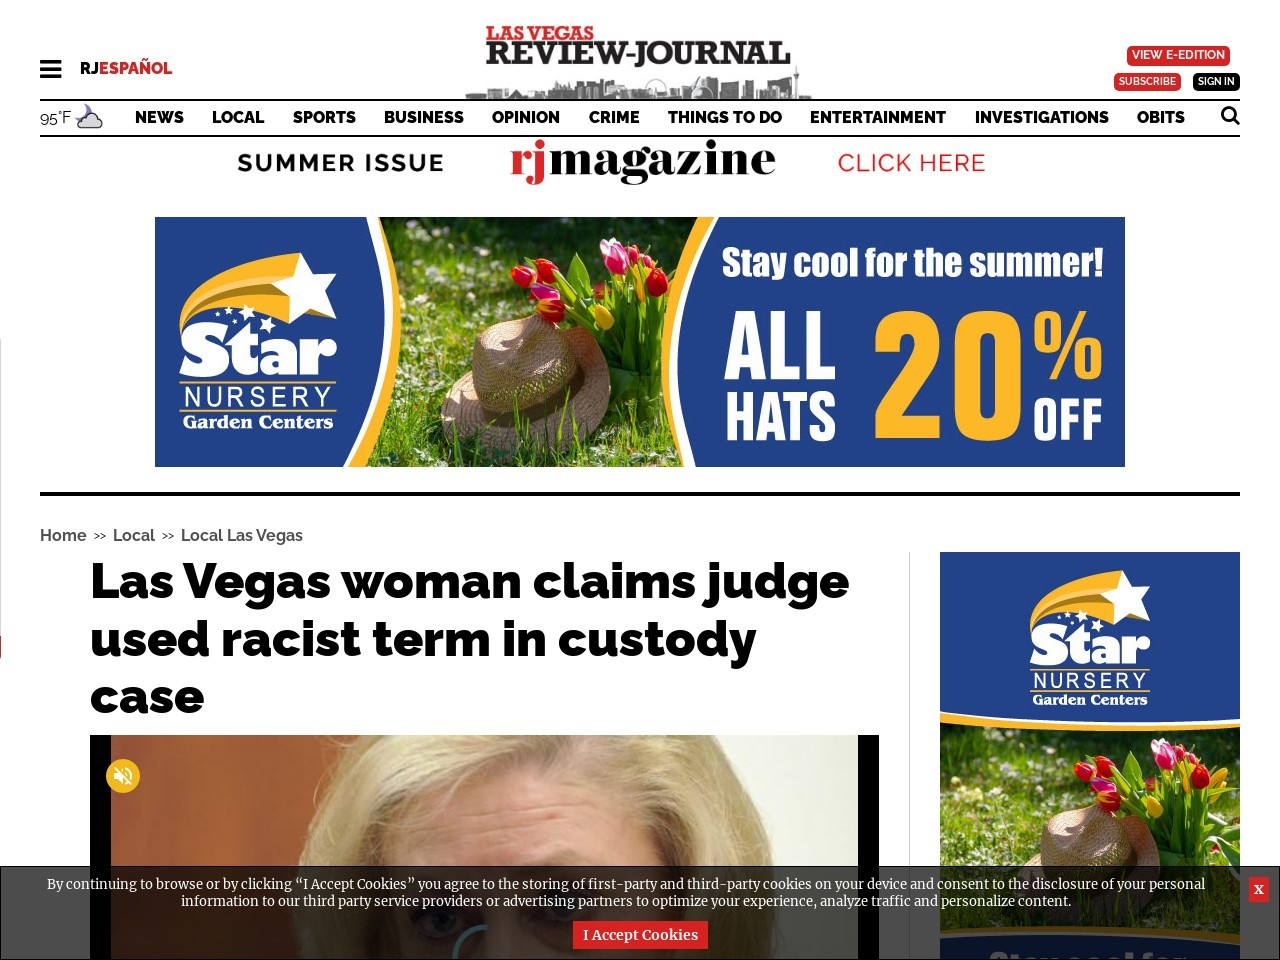 Las Vegas woman claims judge used racist term in custody case